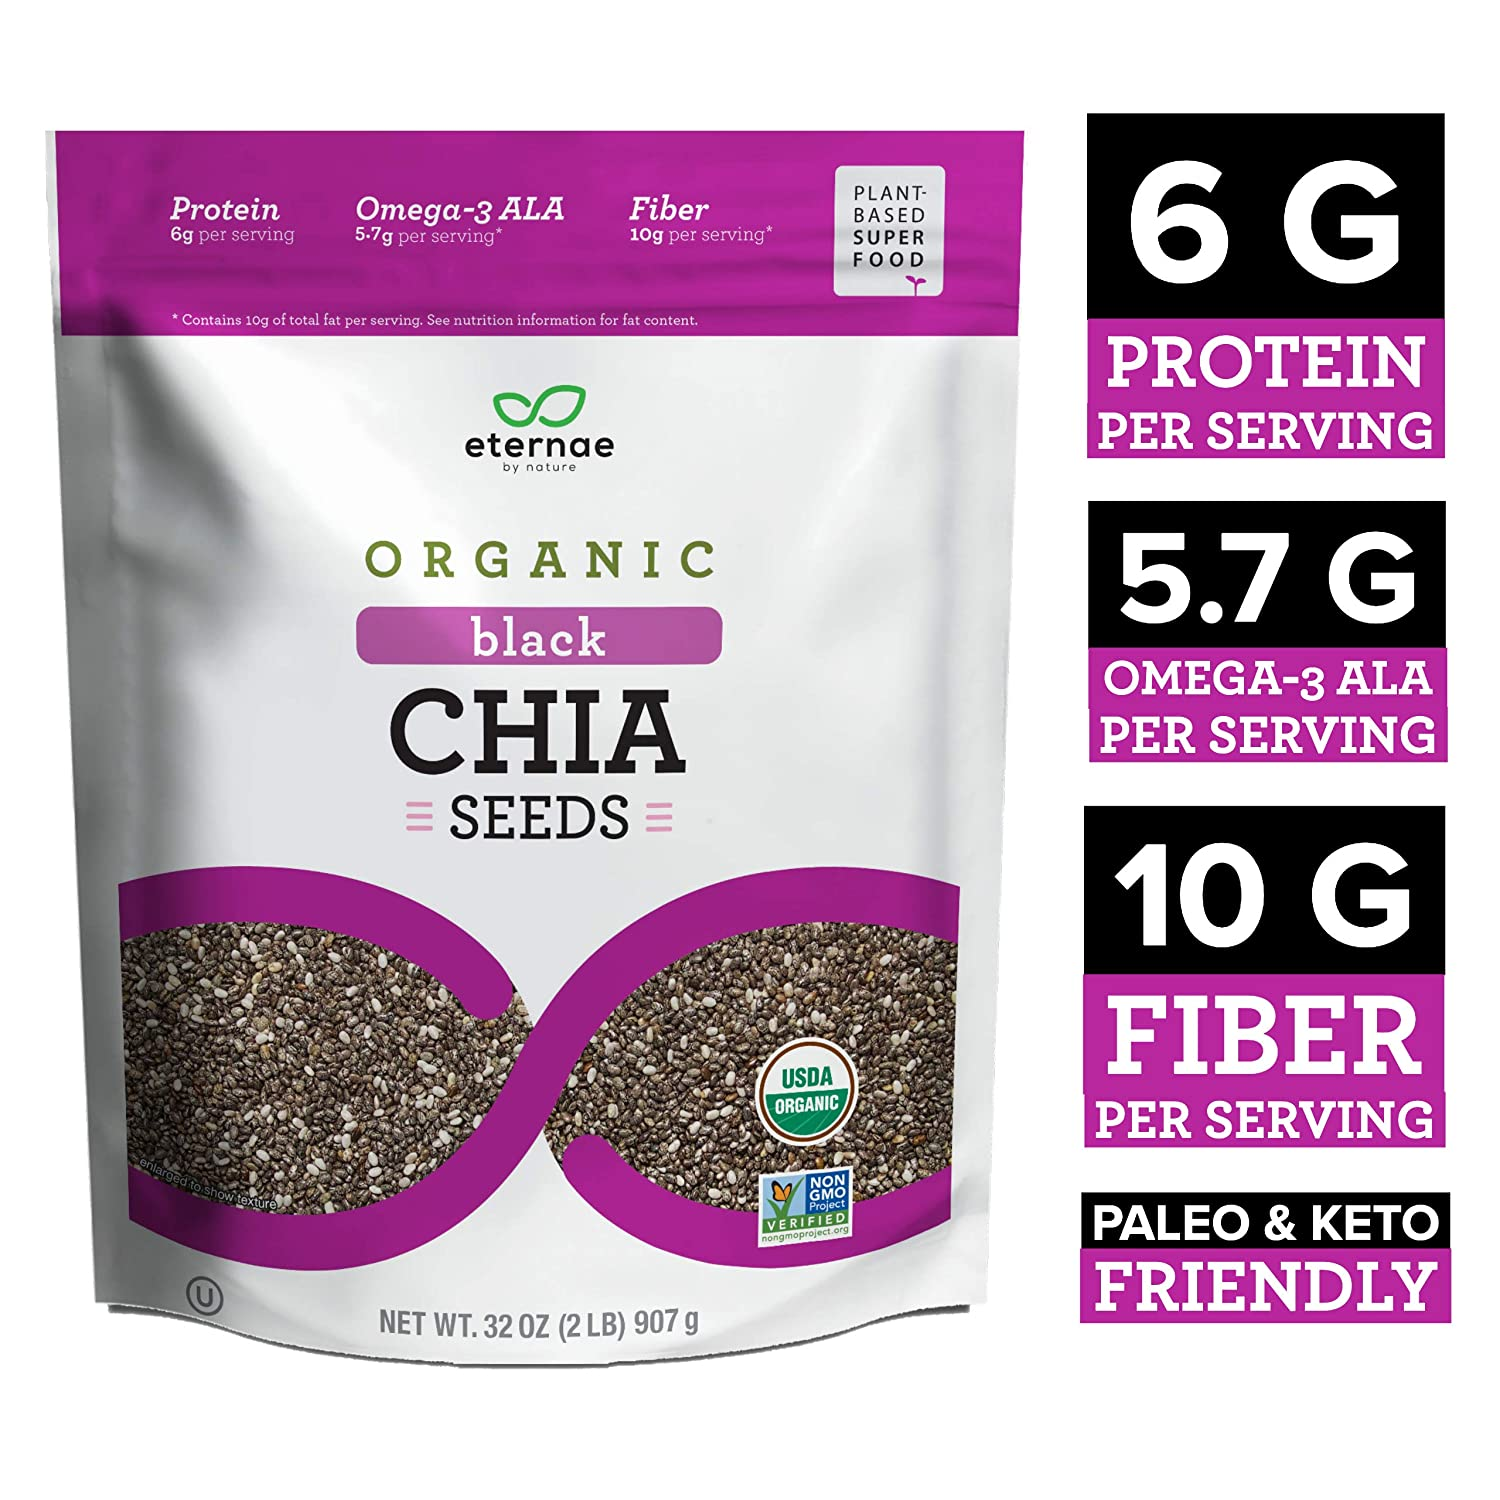 Eternae By Nature Organic Black Chia Seeds, 32 Oz - Keto, Vegan, Non-Gmo, Gluten-Free - Contains Omega-3S, Fiber & Protein - Baking, Smoothies, ...